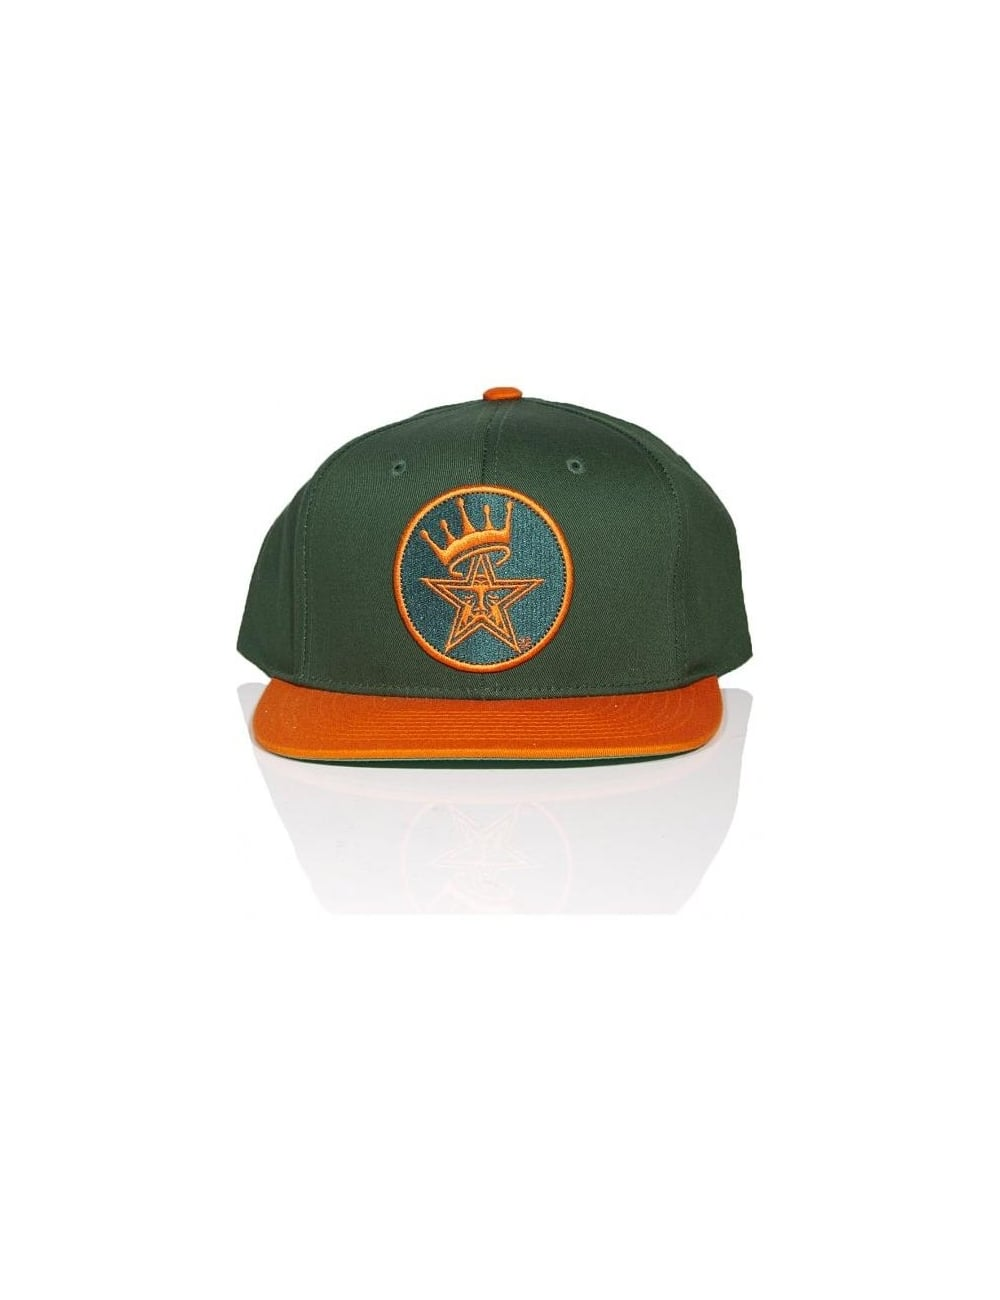 c001621e9b03fd Obey Clothing Ordained Snapback - Green/Orange - Accessories from ...